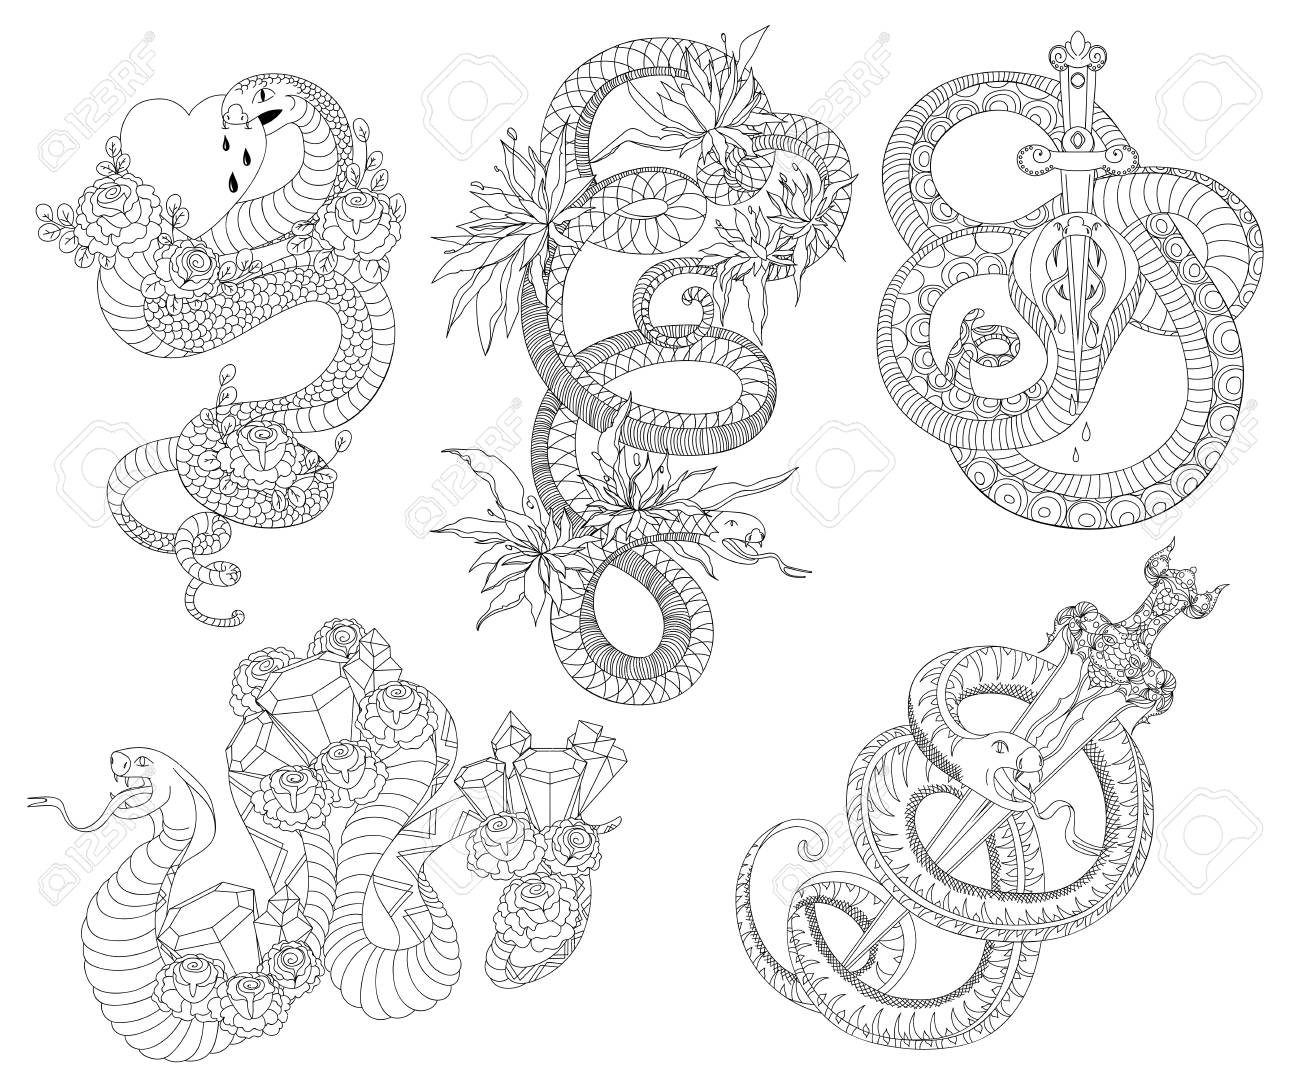 Old school tattoo design black and white isolated elements vector illustration